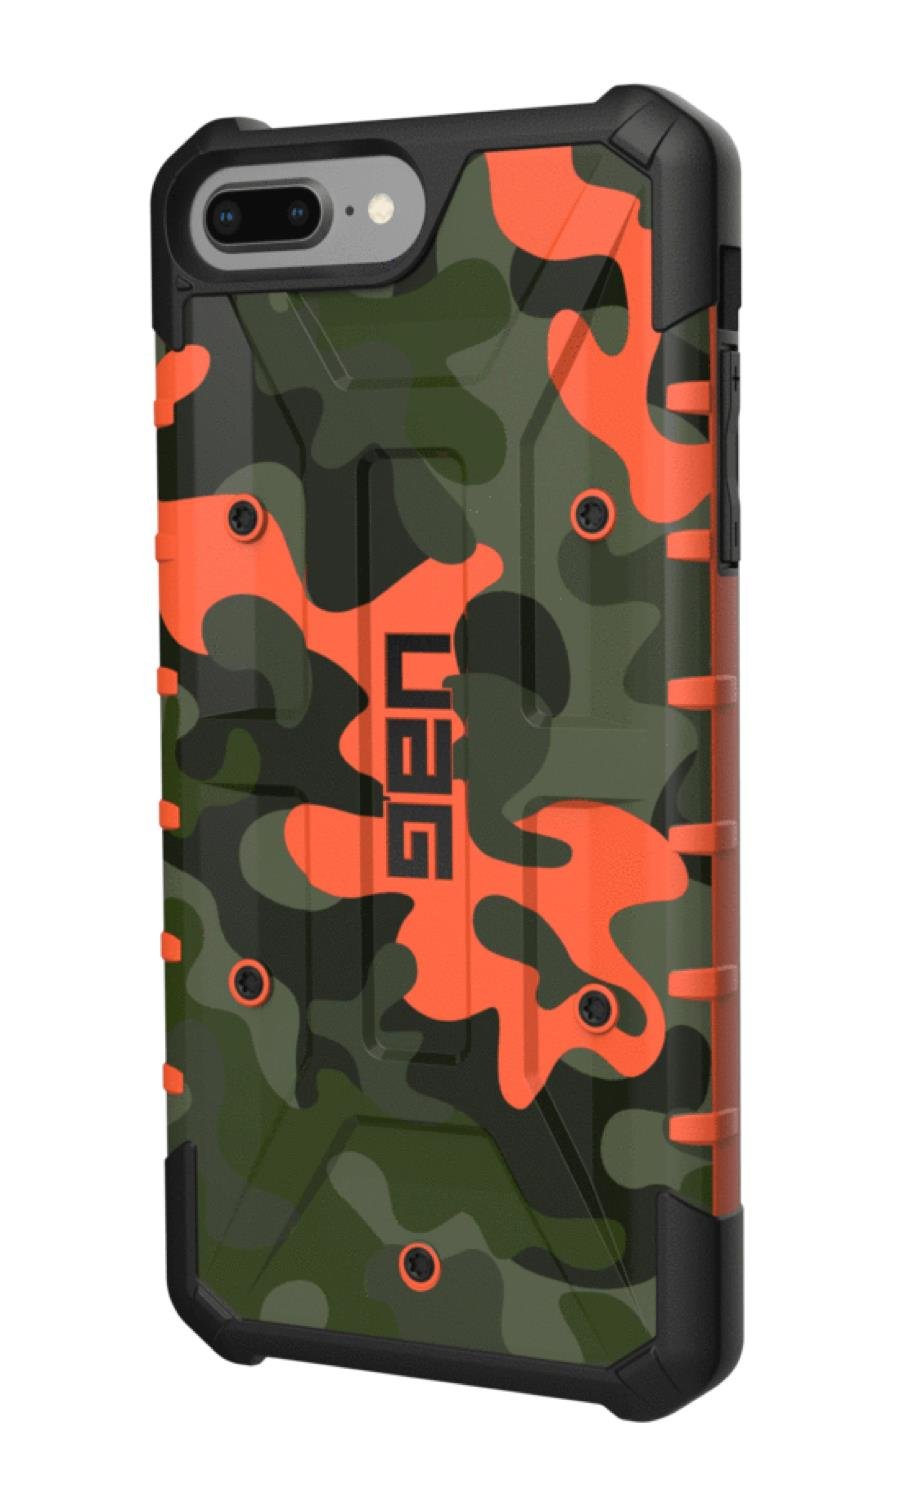 finest selection 491d6 92275 UAG Pathfinder Camo Series for Apple iPhone 8 Plus (Hunter)